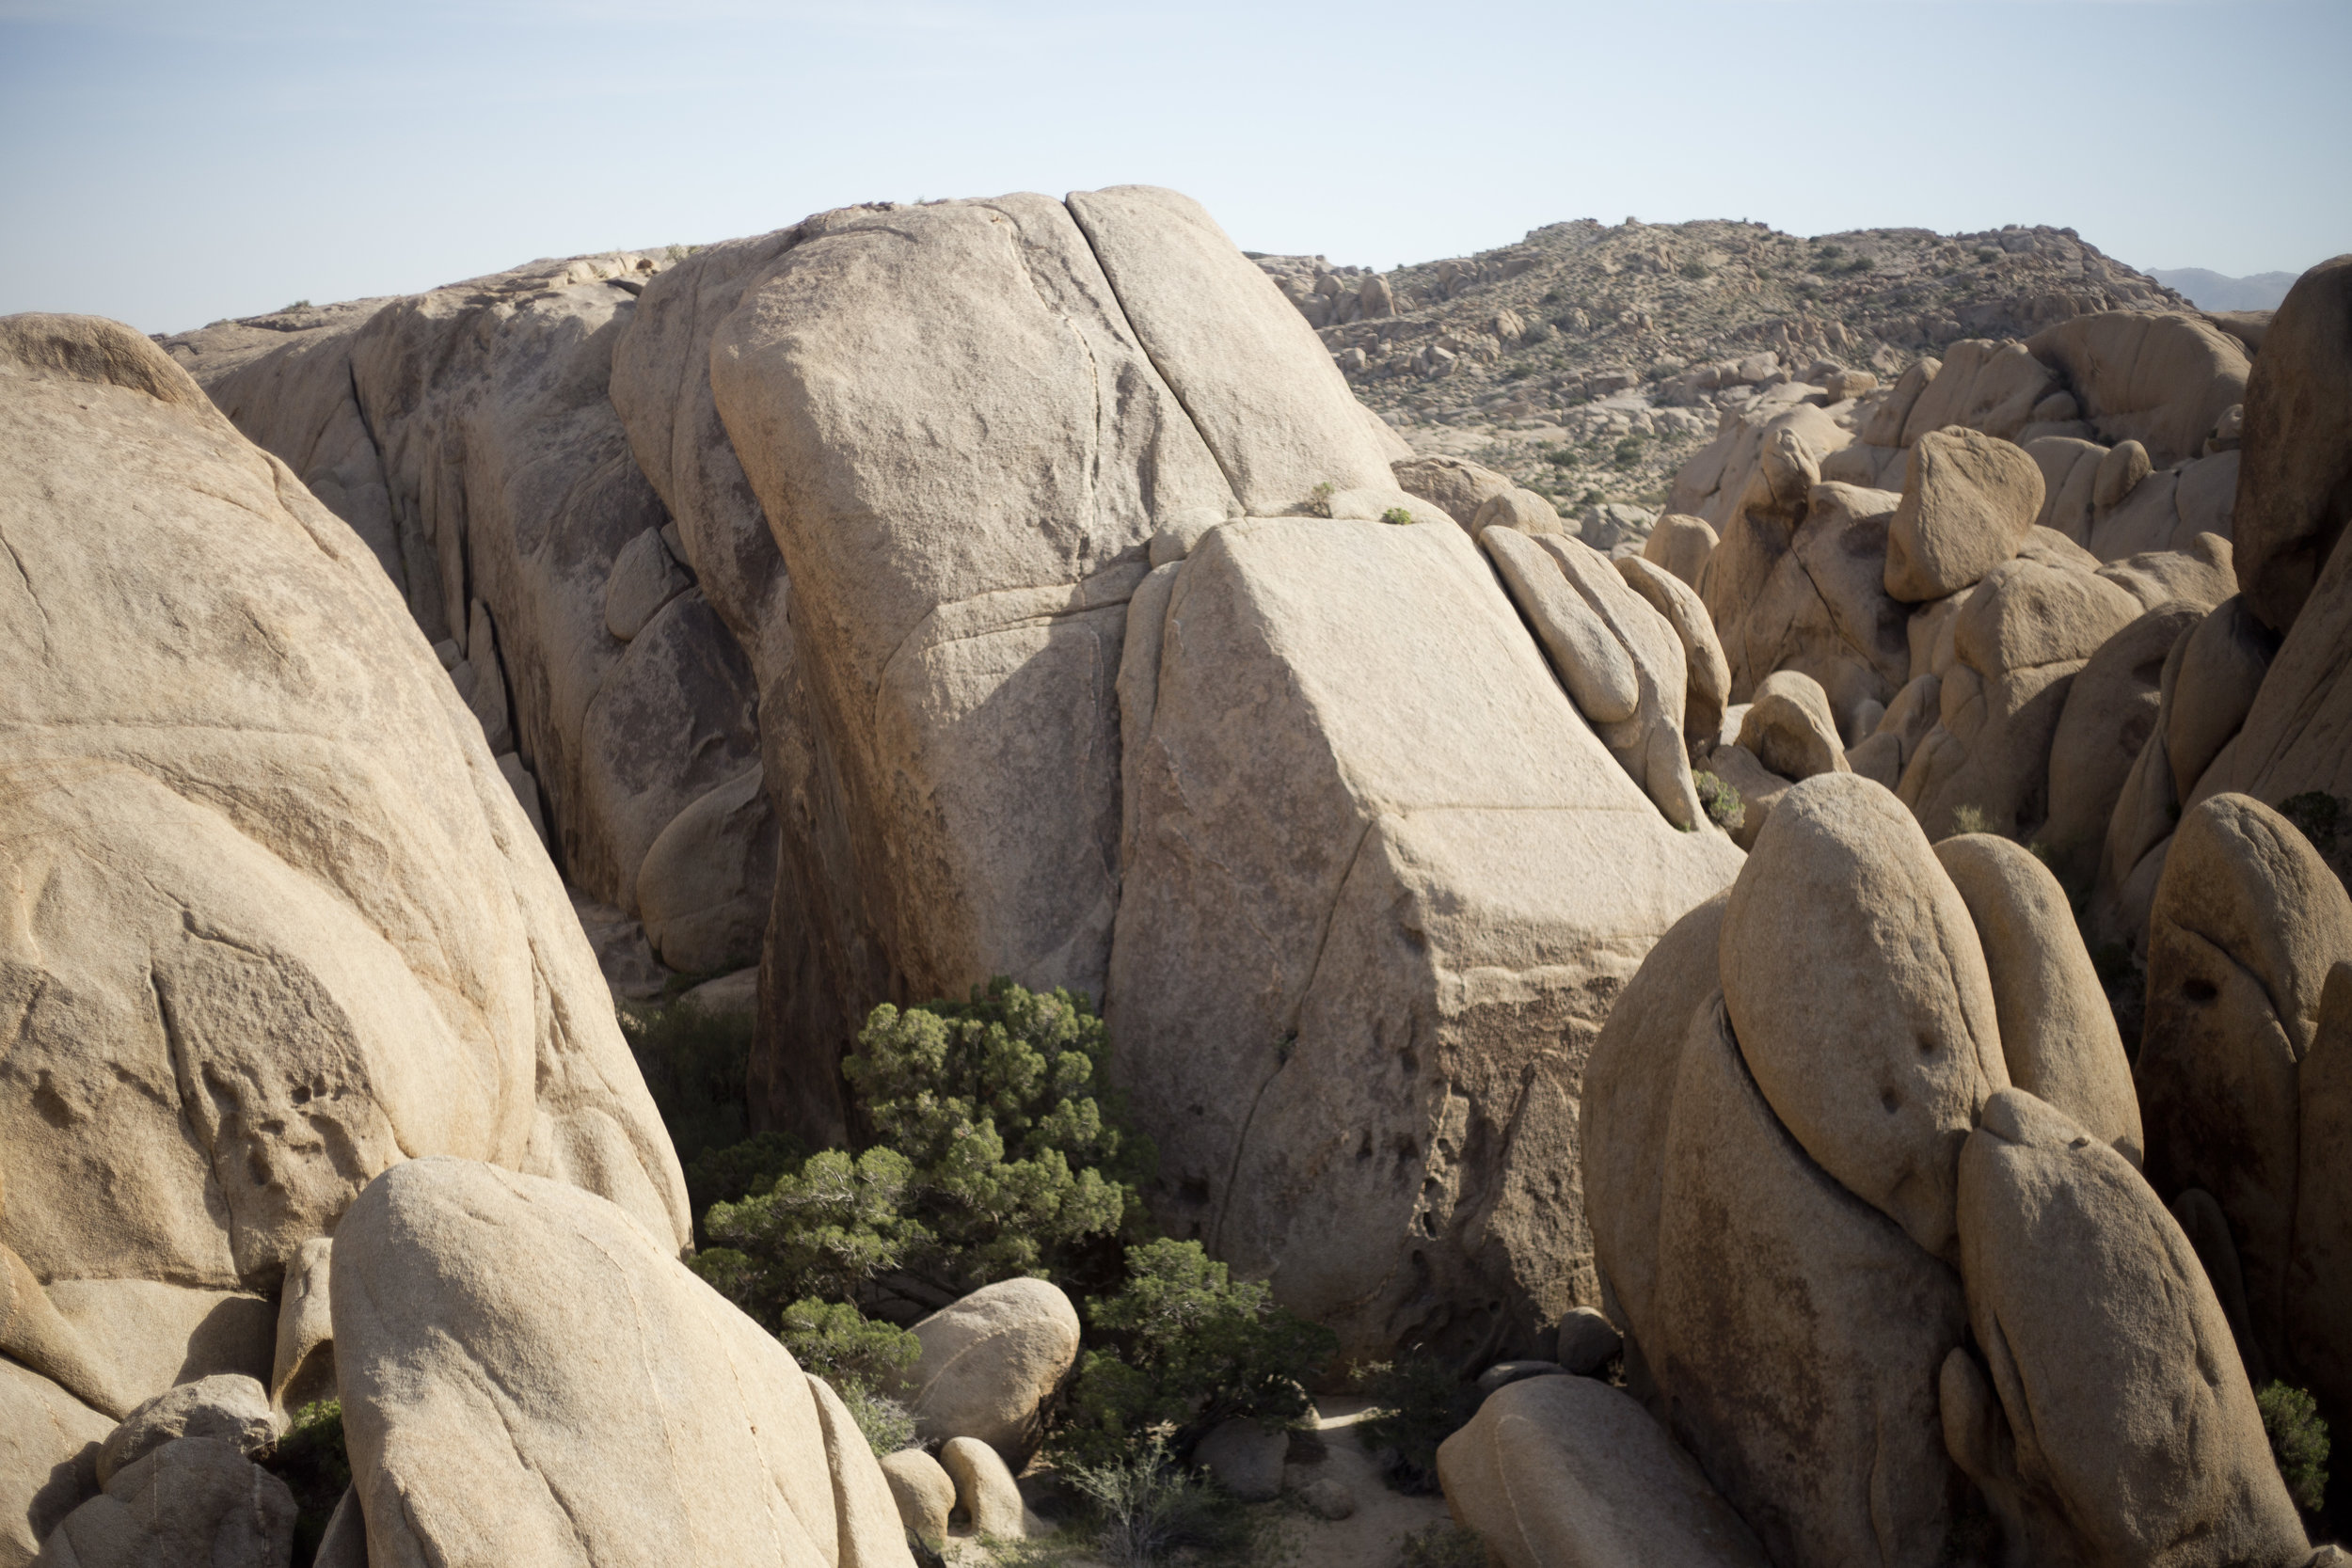 03.23.16_SB2016Day5JoshuaTree002 copy copy.jpg